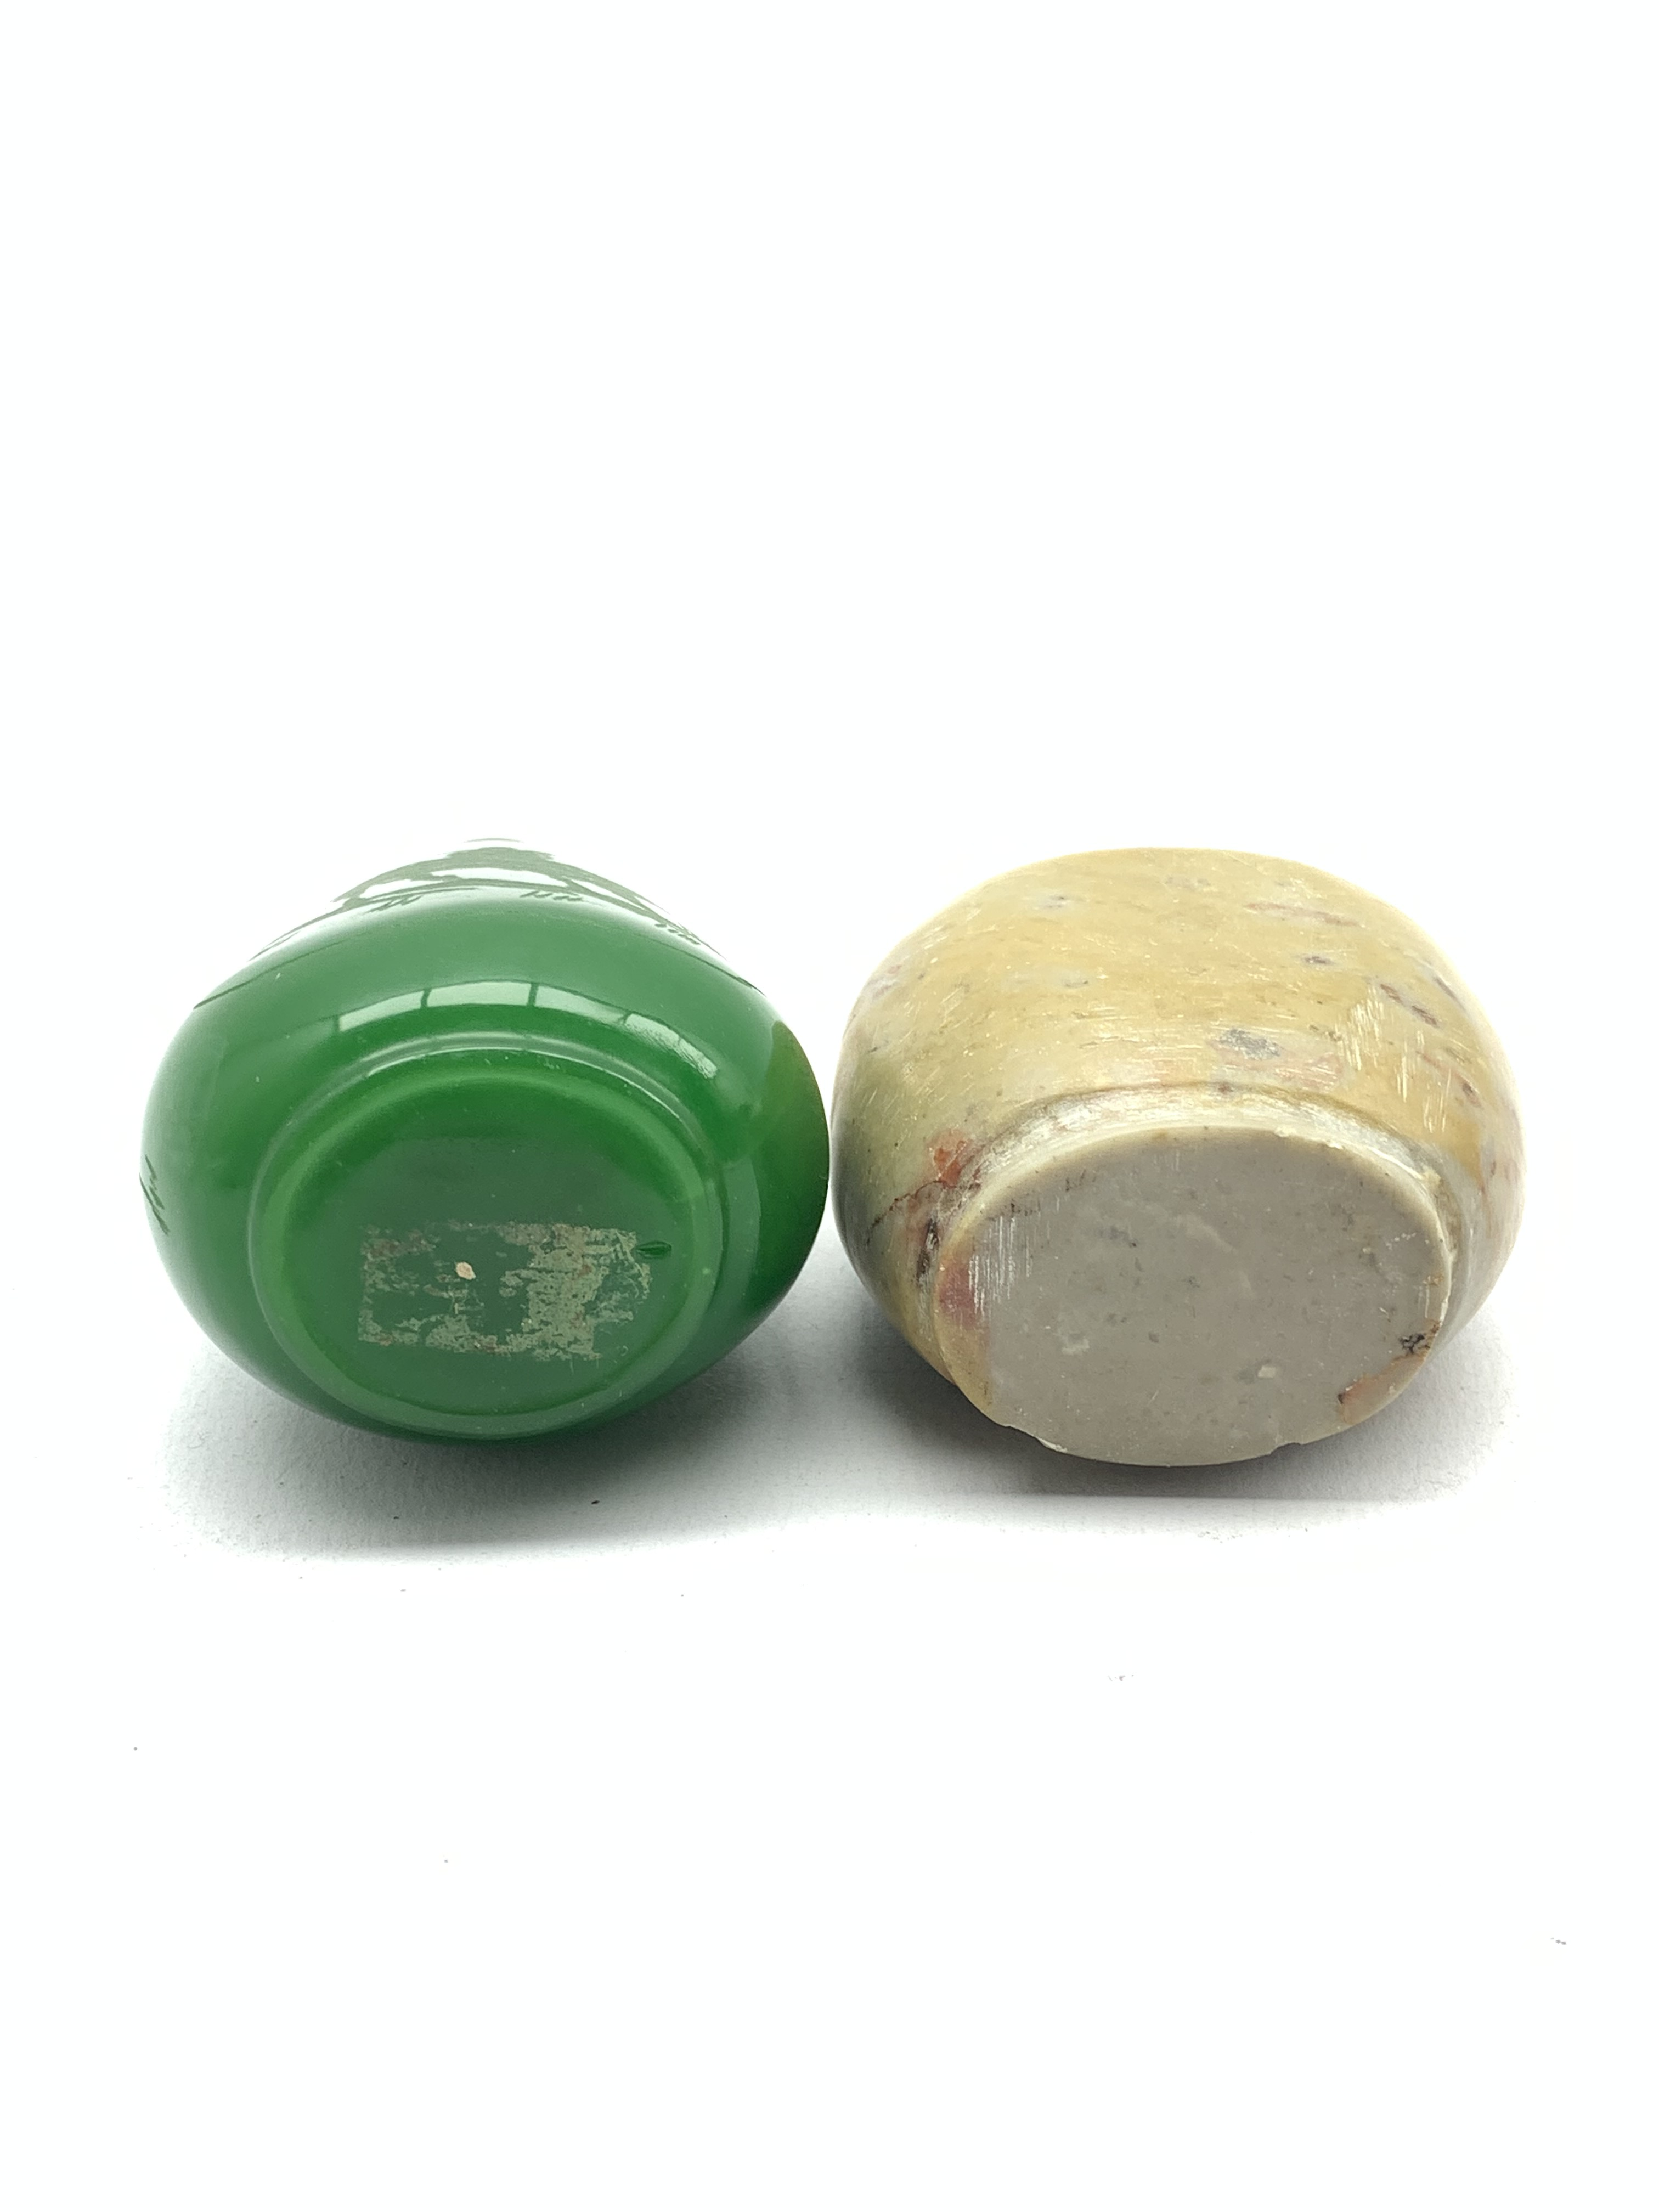 Chinese green hardstone snuff bottle - Image 3 of 3